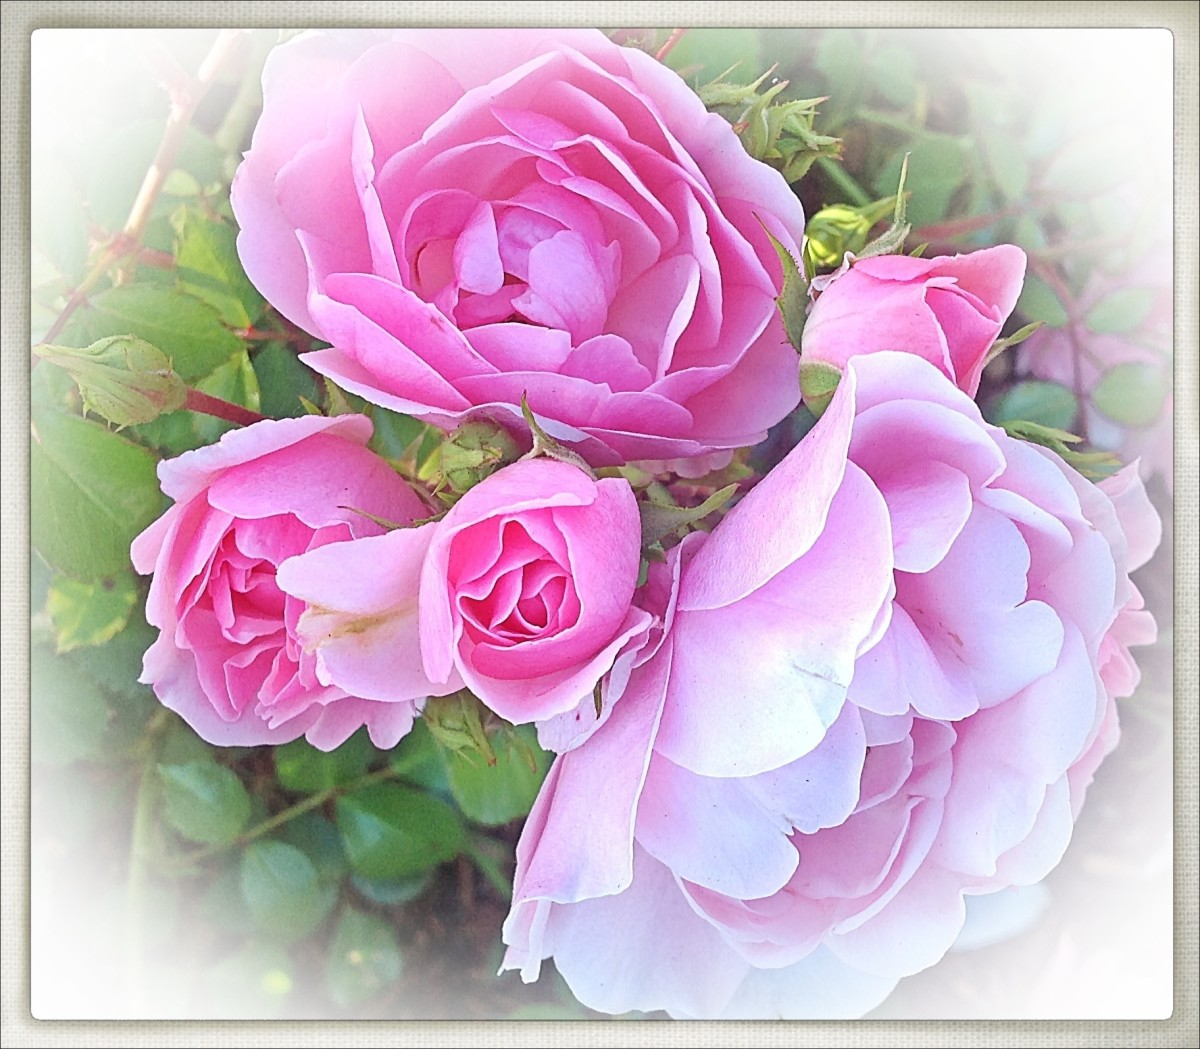 Roses - Flower Facts, Symbolic Meanings and a Poem of Love